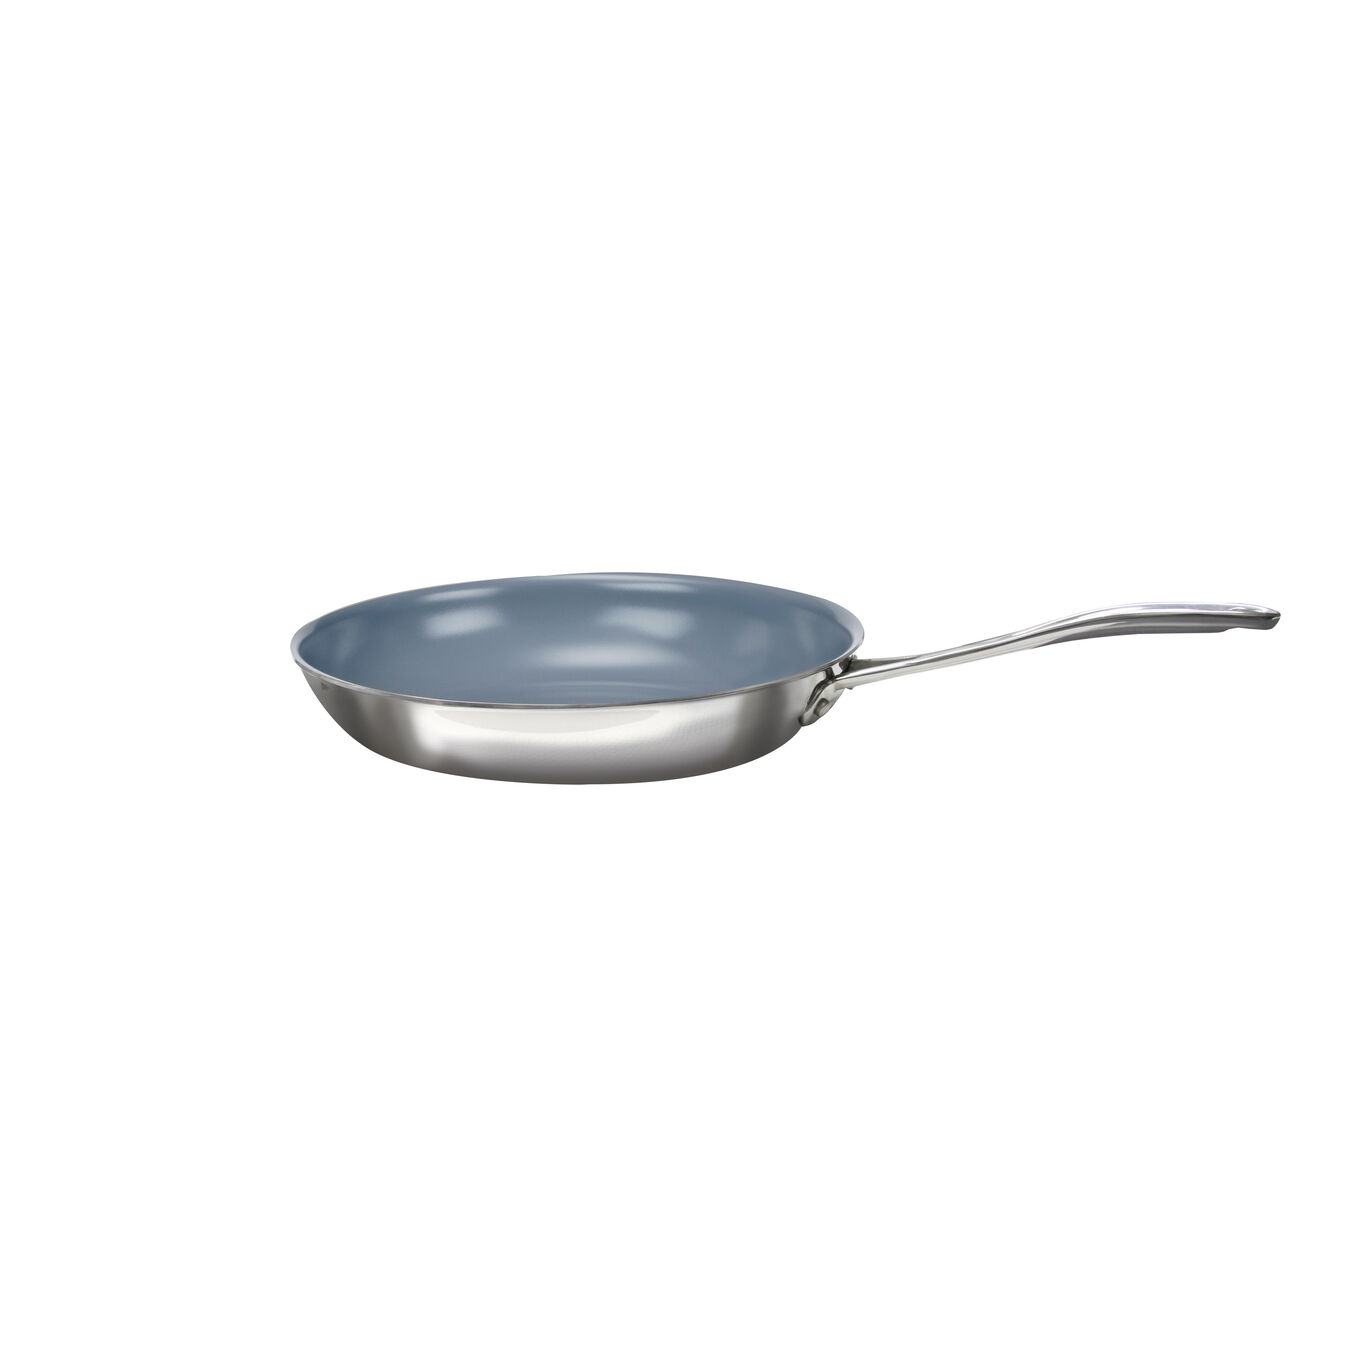 20 cm 18/10 Stainless Steel Poêle,,large 1